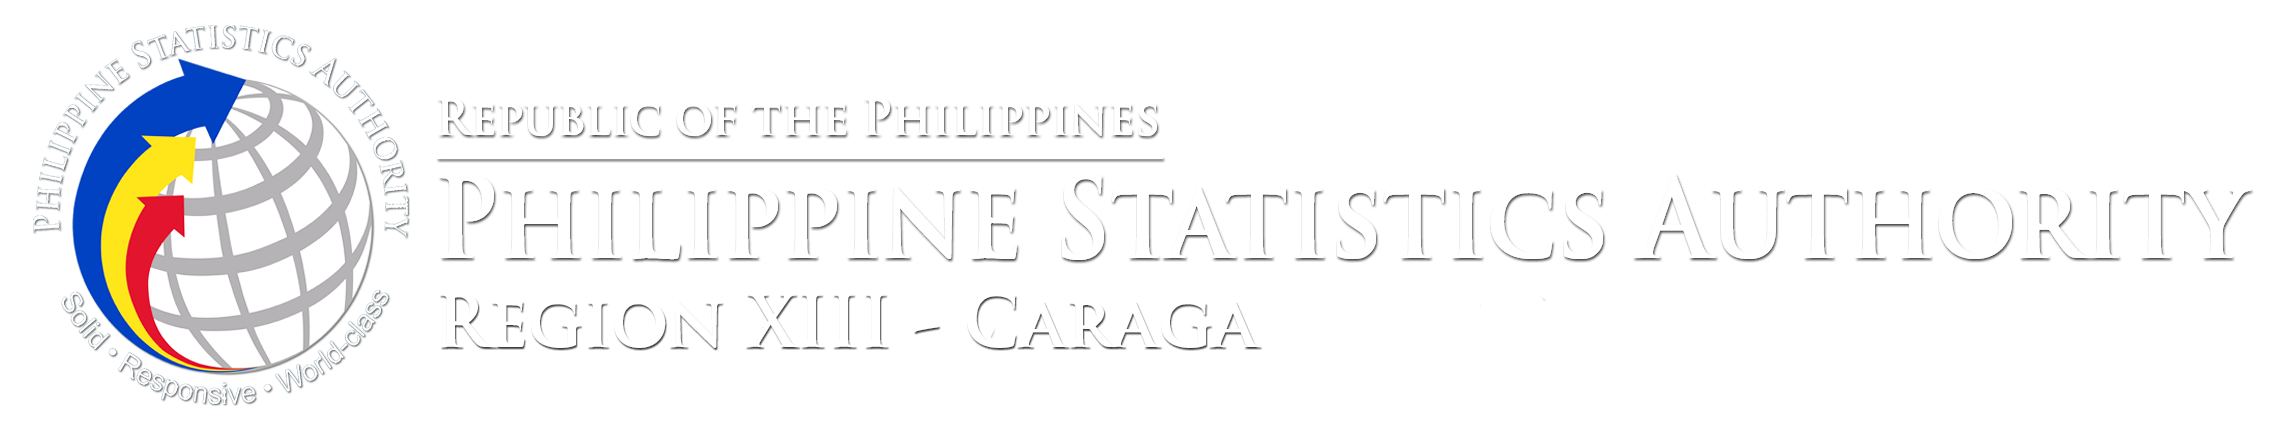 Philippine Statistics Authority Region XIII (Caraga)